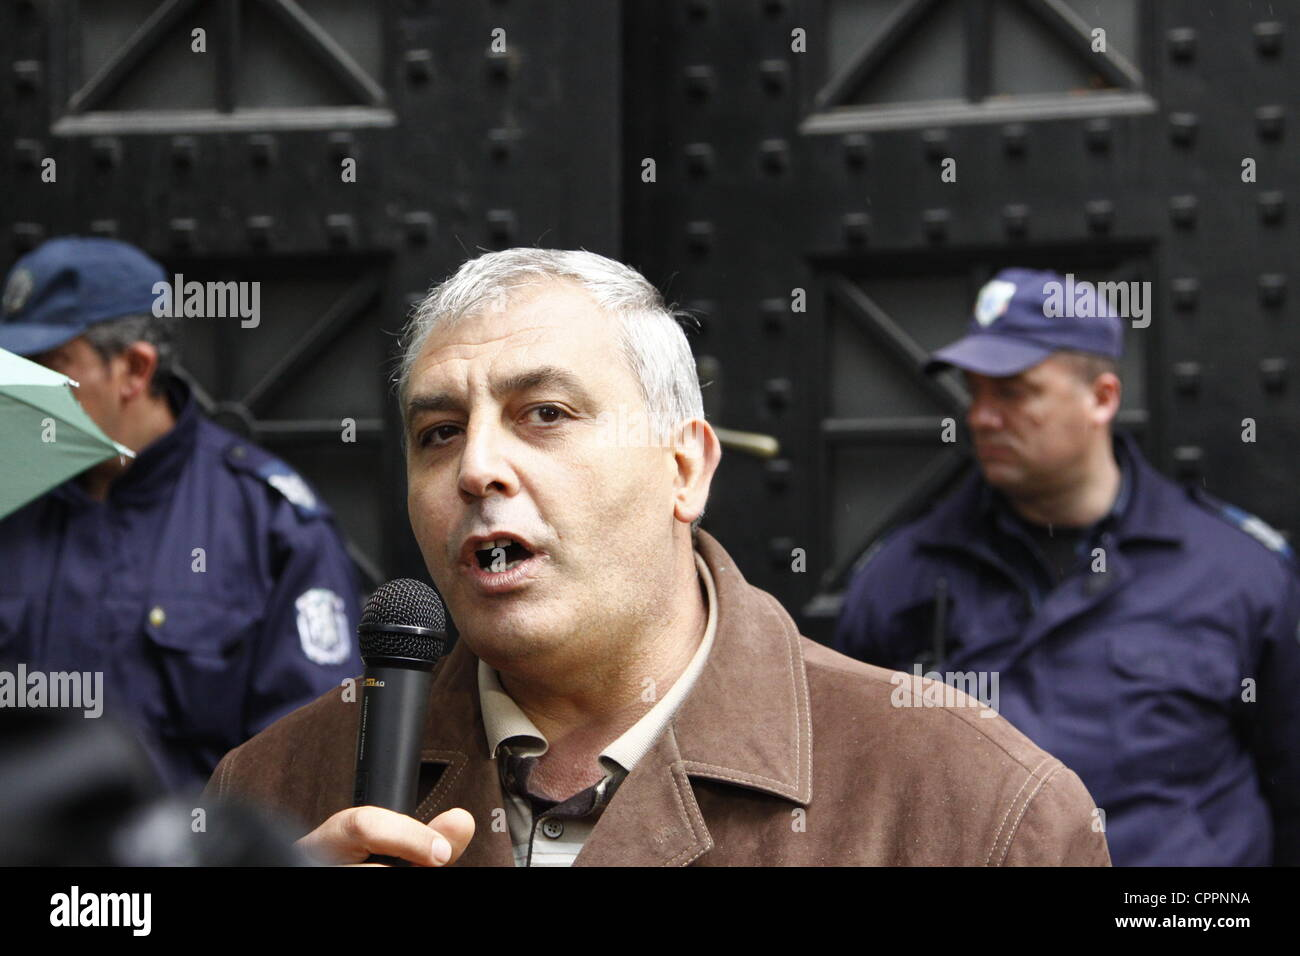 Petar Bunev, head of the Railway Workers Union, talking to the protesters in front of the Transport Ministry. Bunev - Stock Image